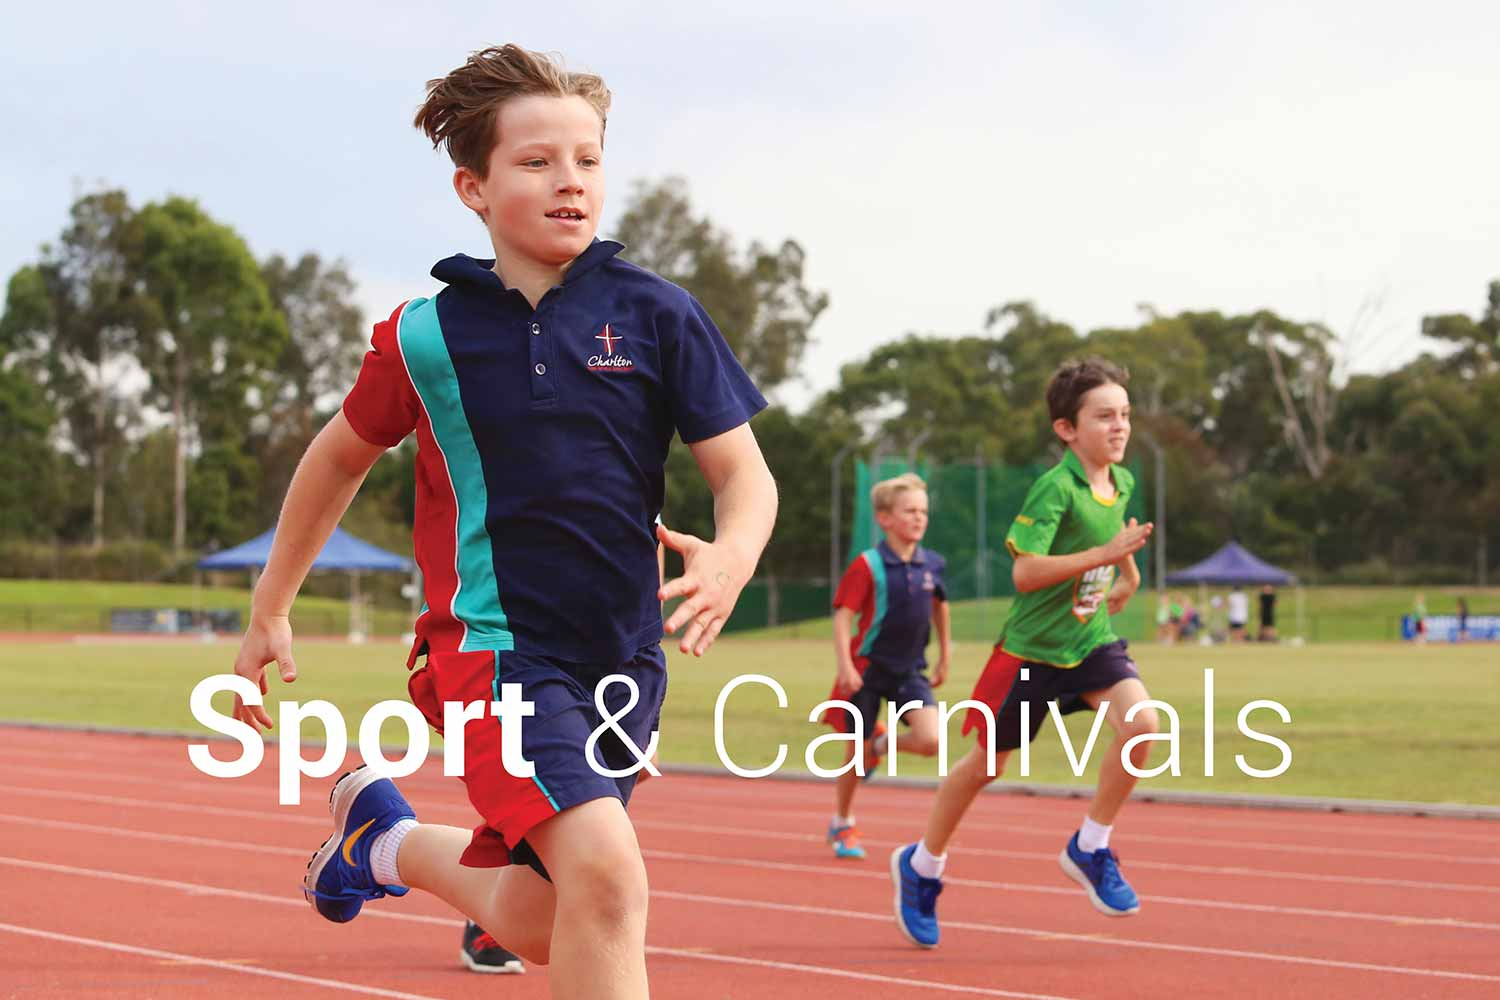 charlton christian college sports and carnivals junior school